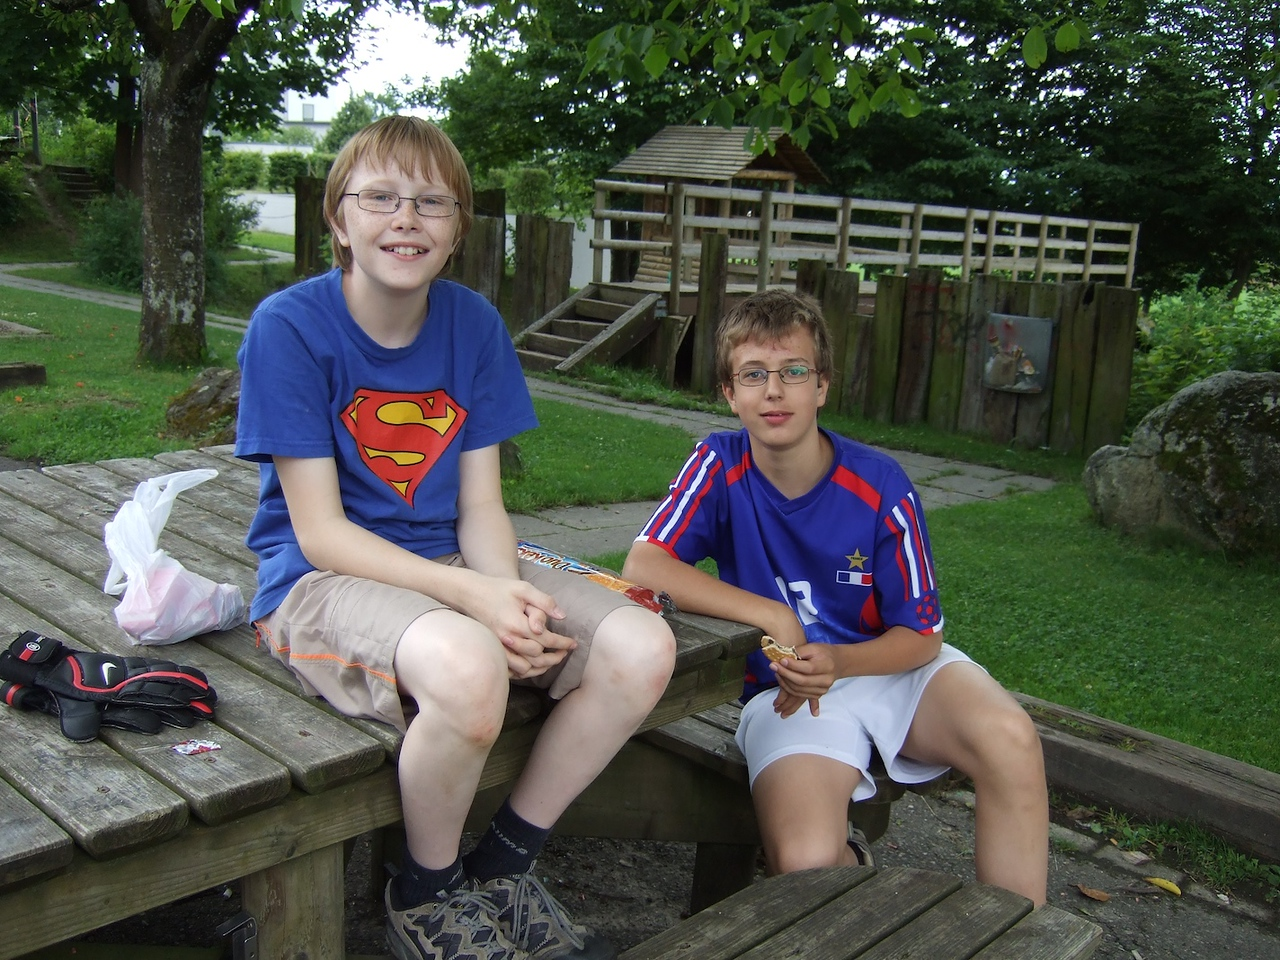 Saturday 26th July 2008 - Jason enjoys a rest from football with his French exchange student pal Remy